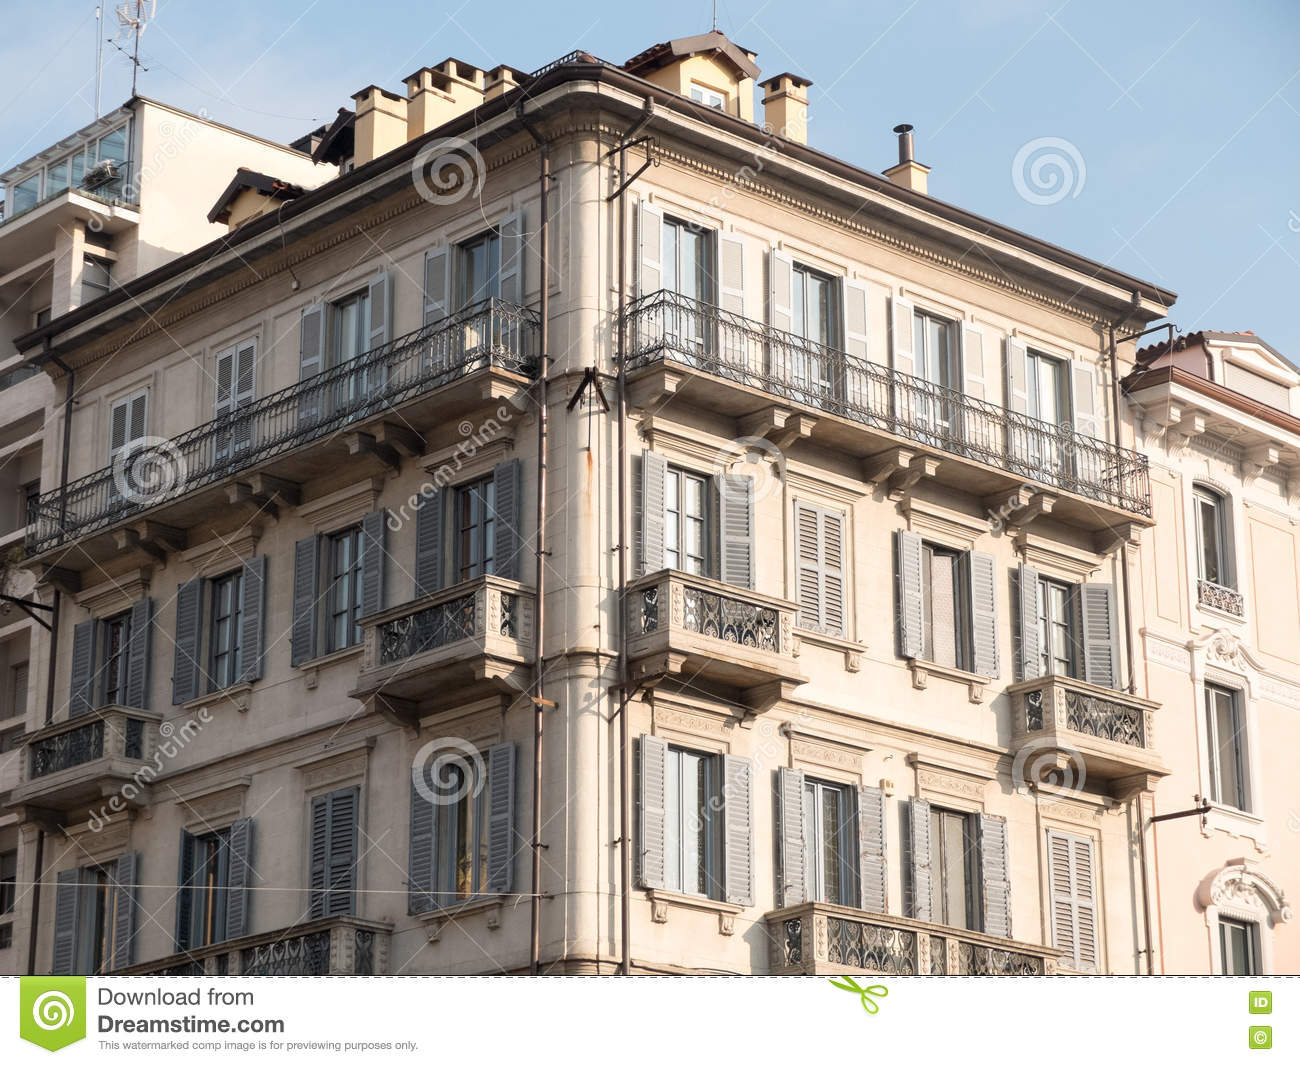 Old European Apartment Balconies Stock Photo - Image: 81237112